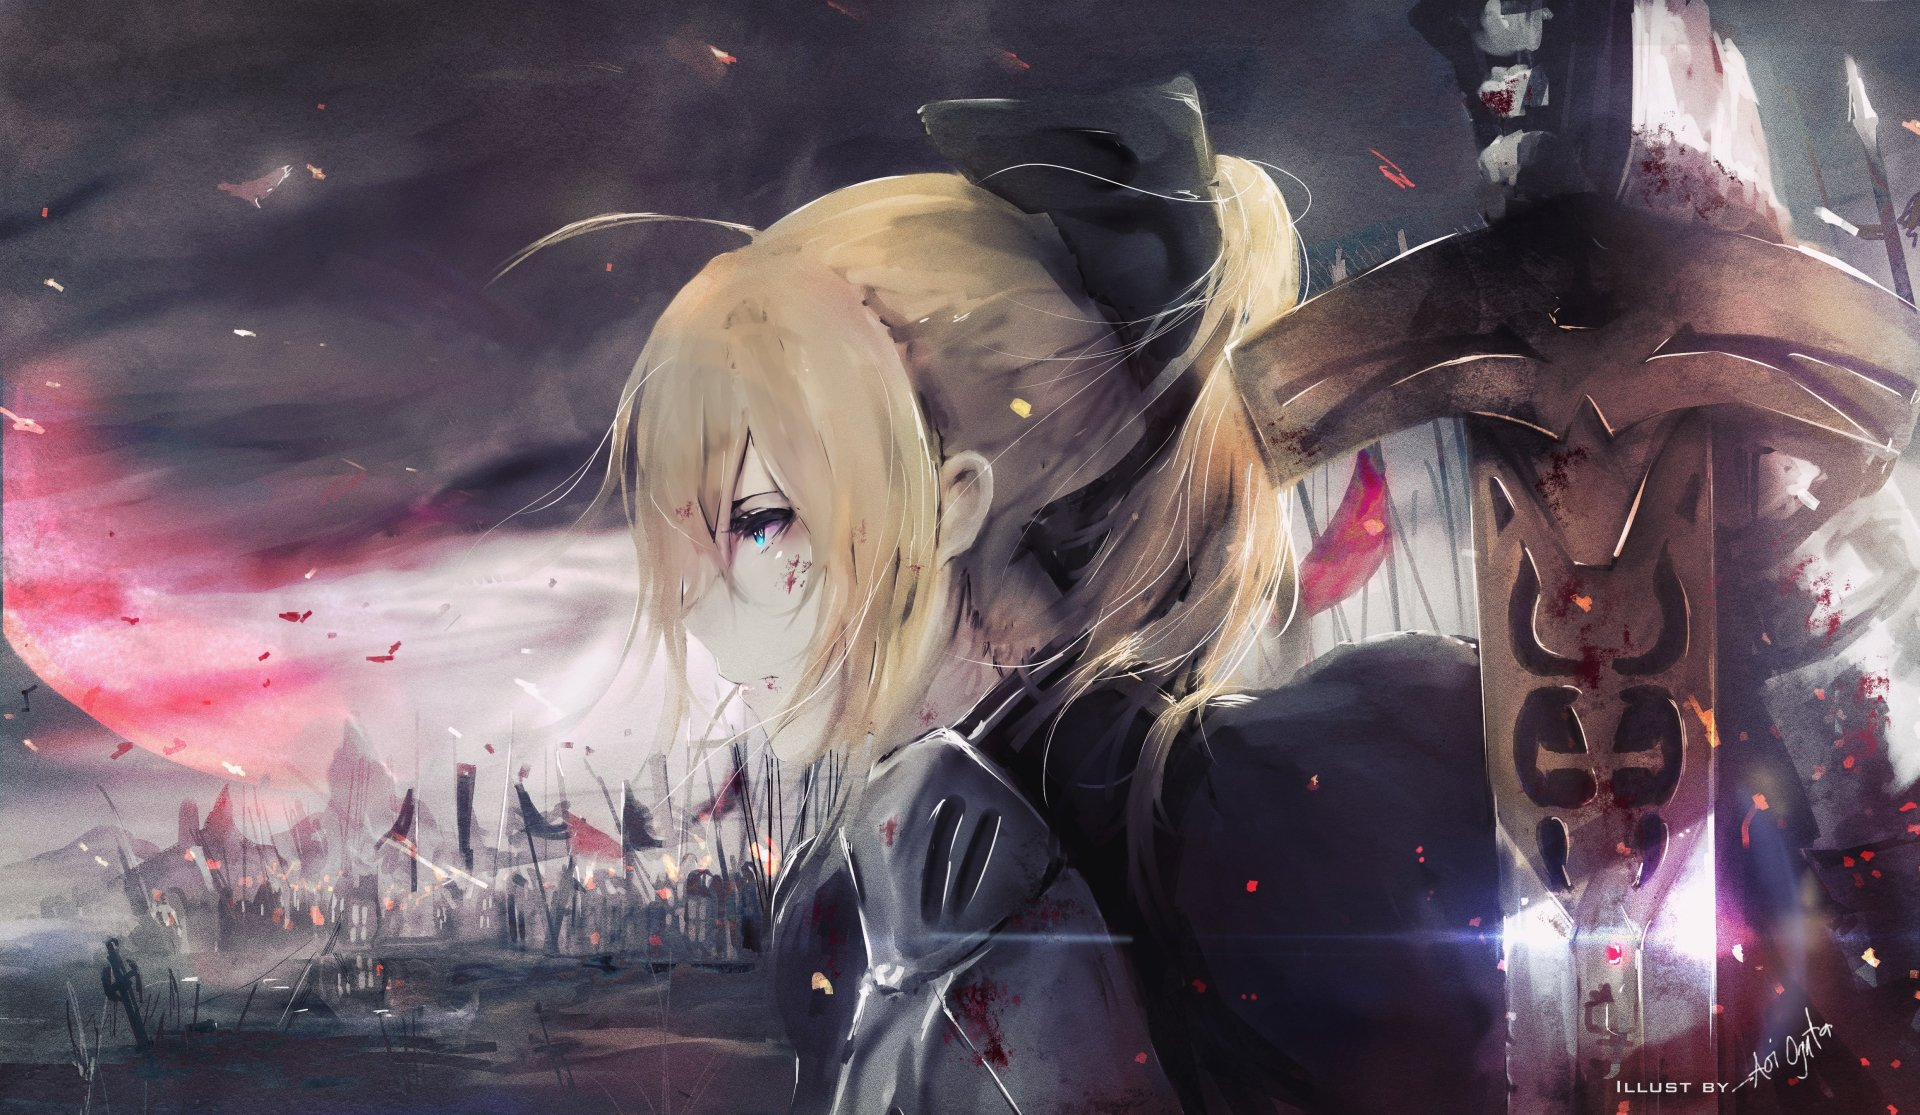 Anime - Fate/Stay Night  Saber (Fate Series) Aqua Eyes Blonde Armor Sword Woman Warrior Wallpaper